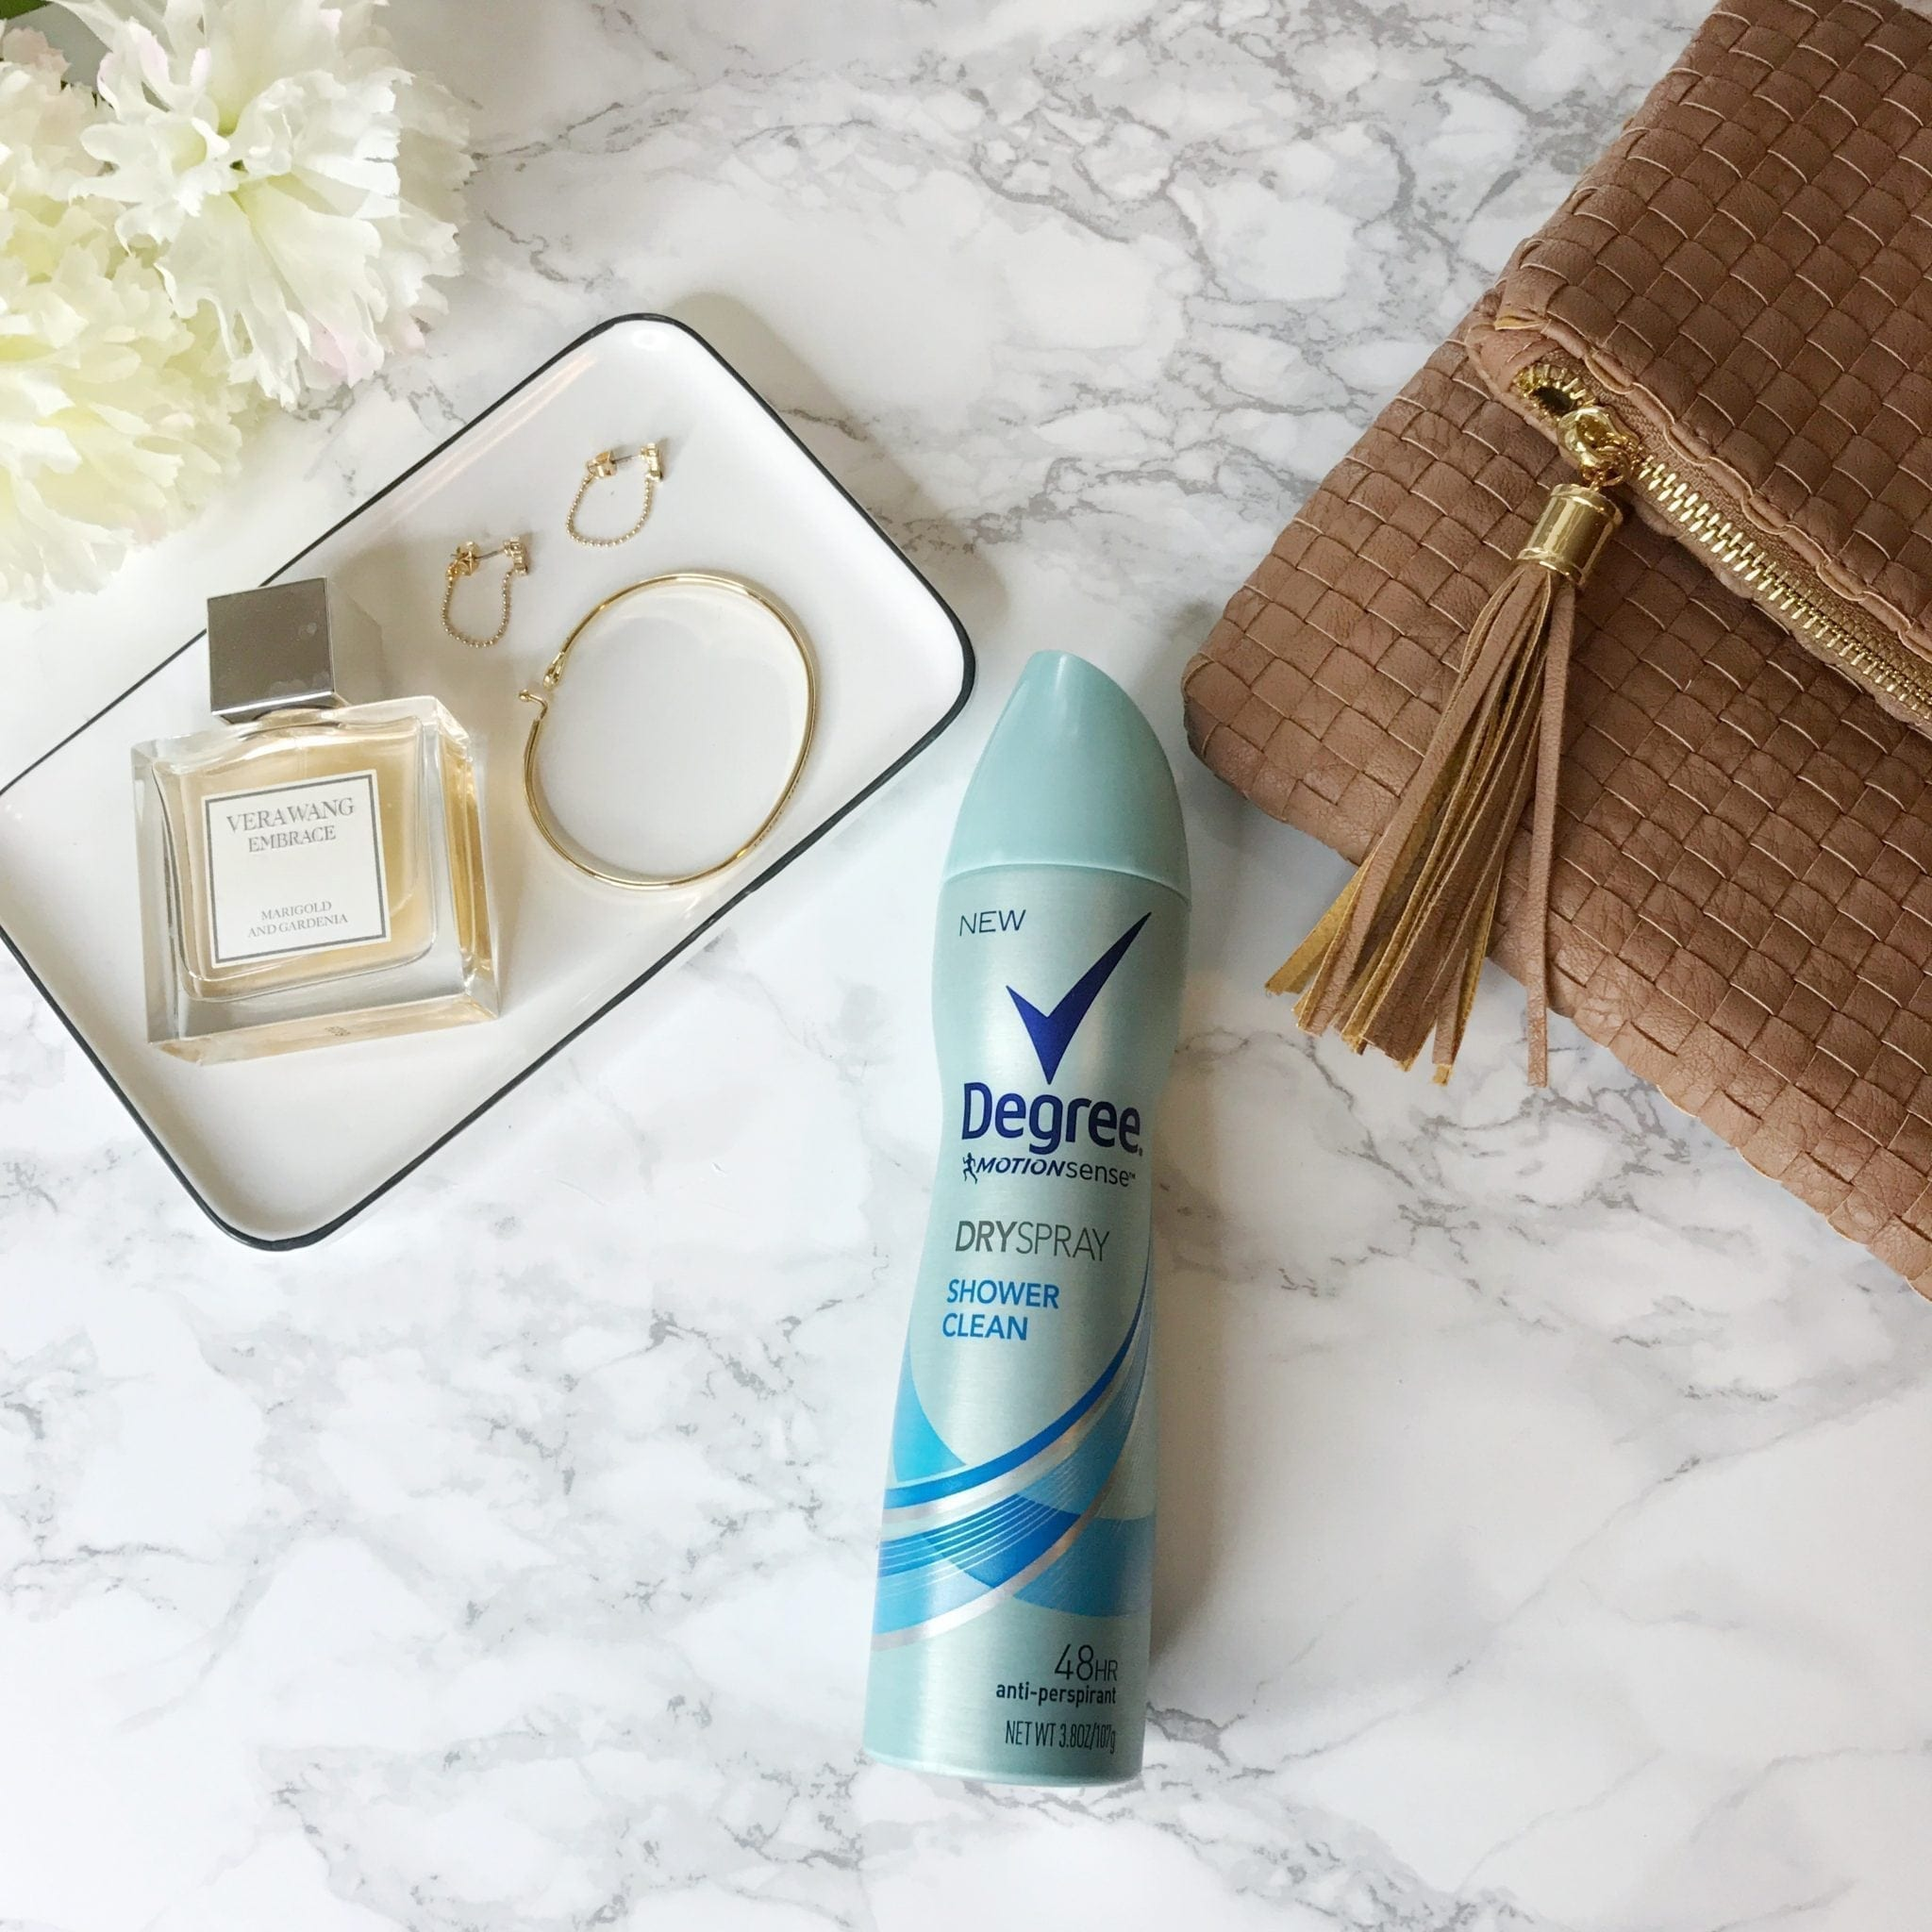 Finding the Right Dry Spray Deodorant